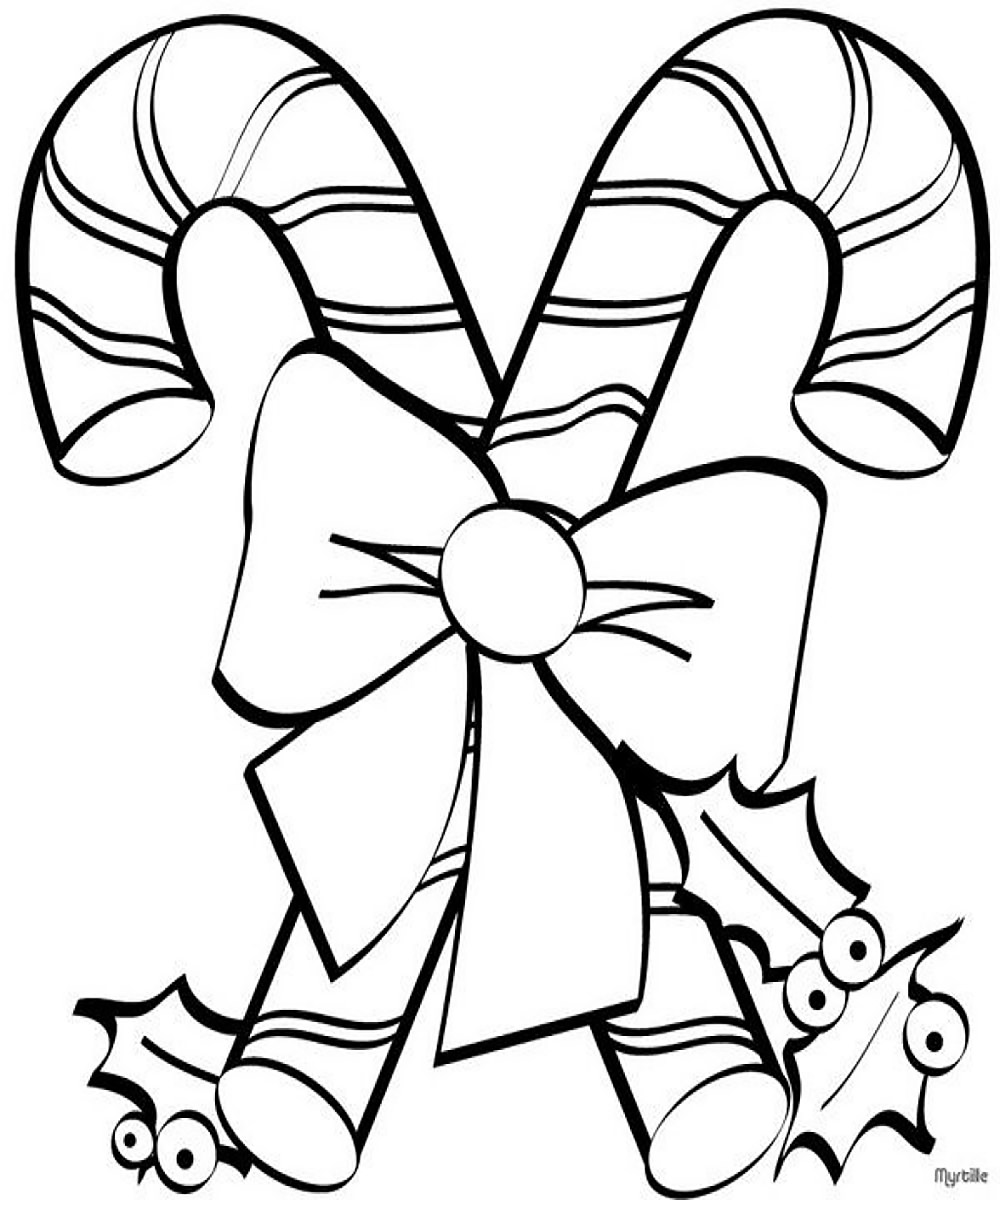 1000x1220 Free Christian Coloring Pages For Kids And Young Children Level